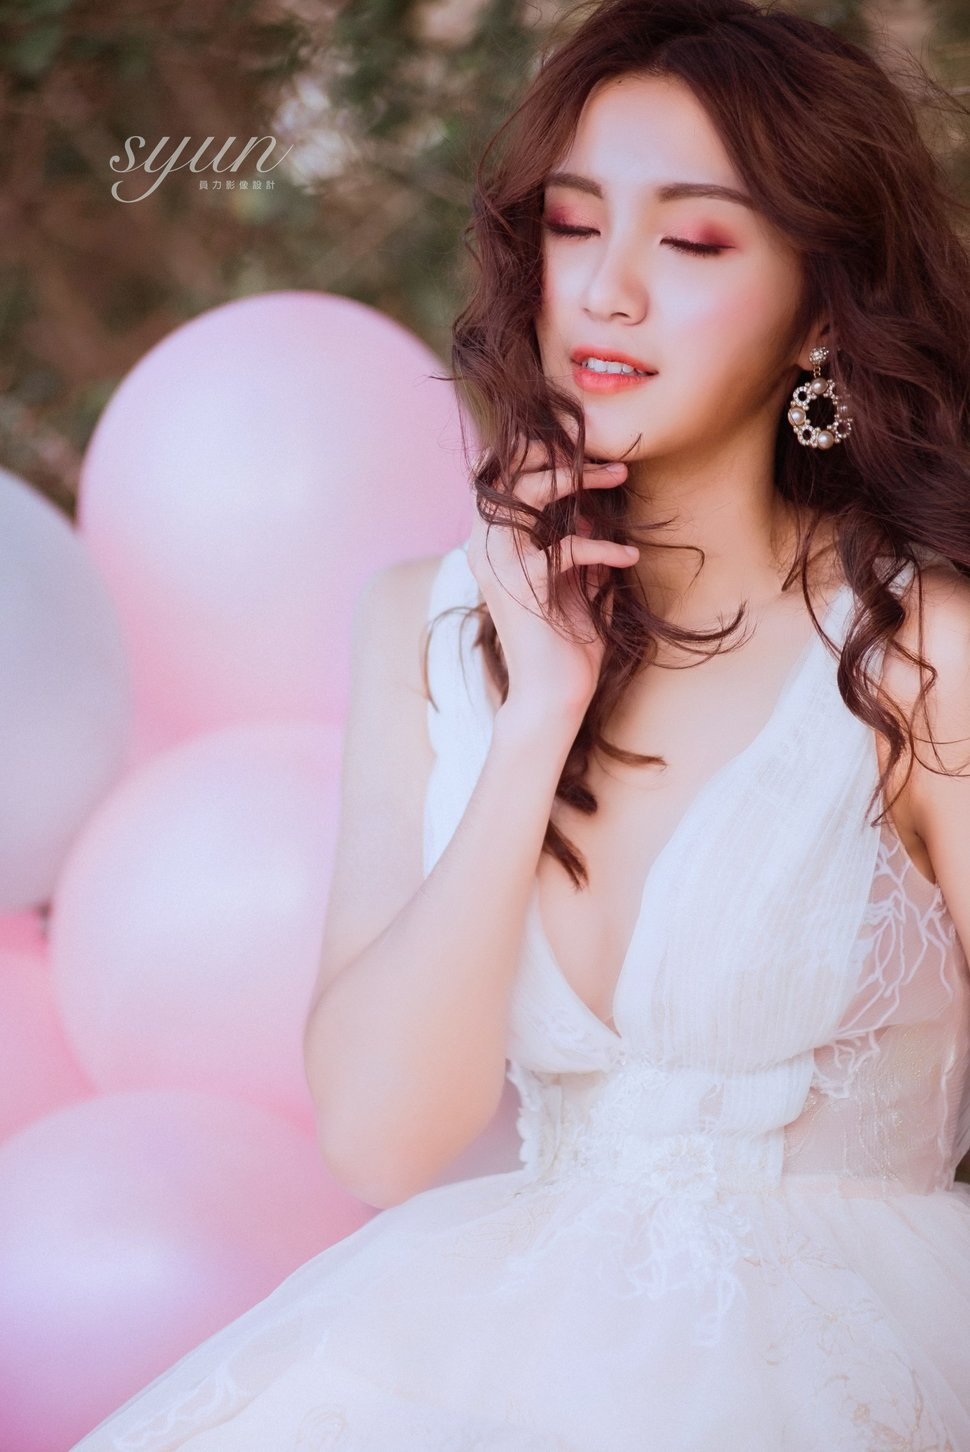 IMG_4675 - Little A Love Makeup《結婚吧》